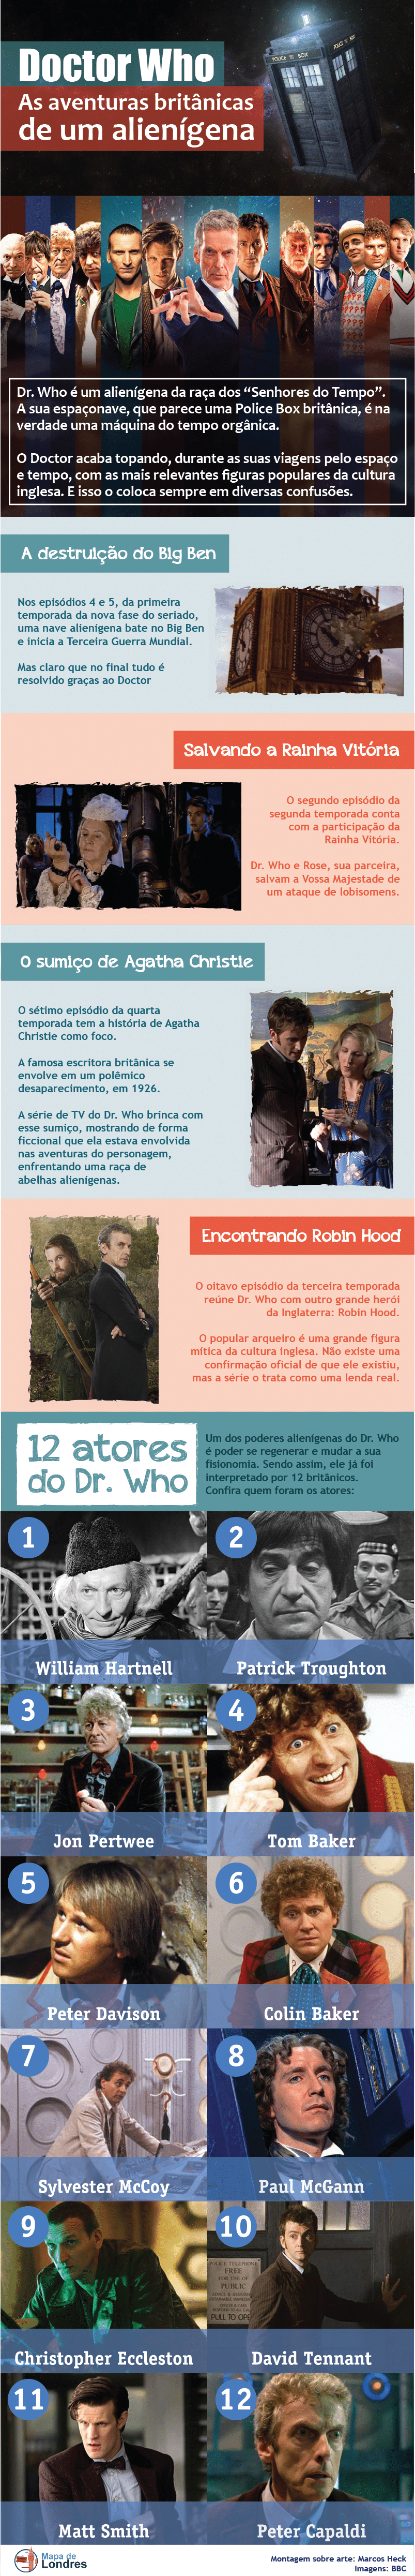 Info Doctor Who